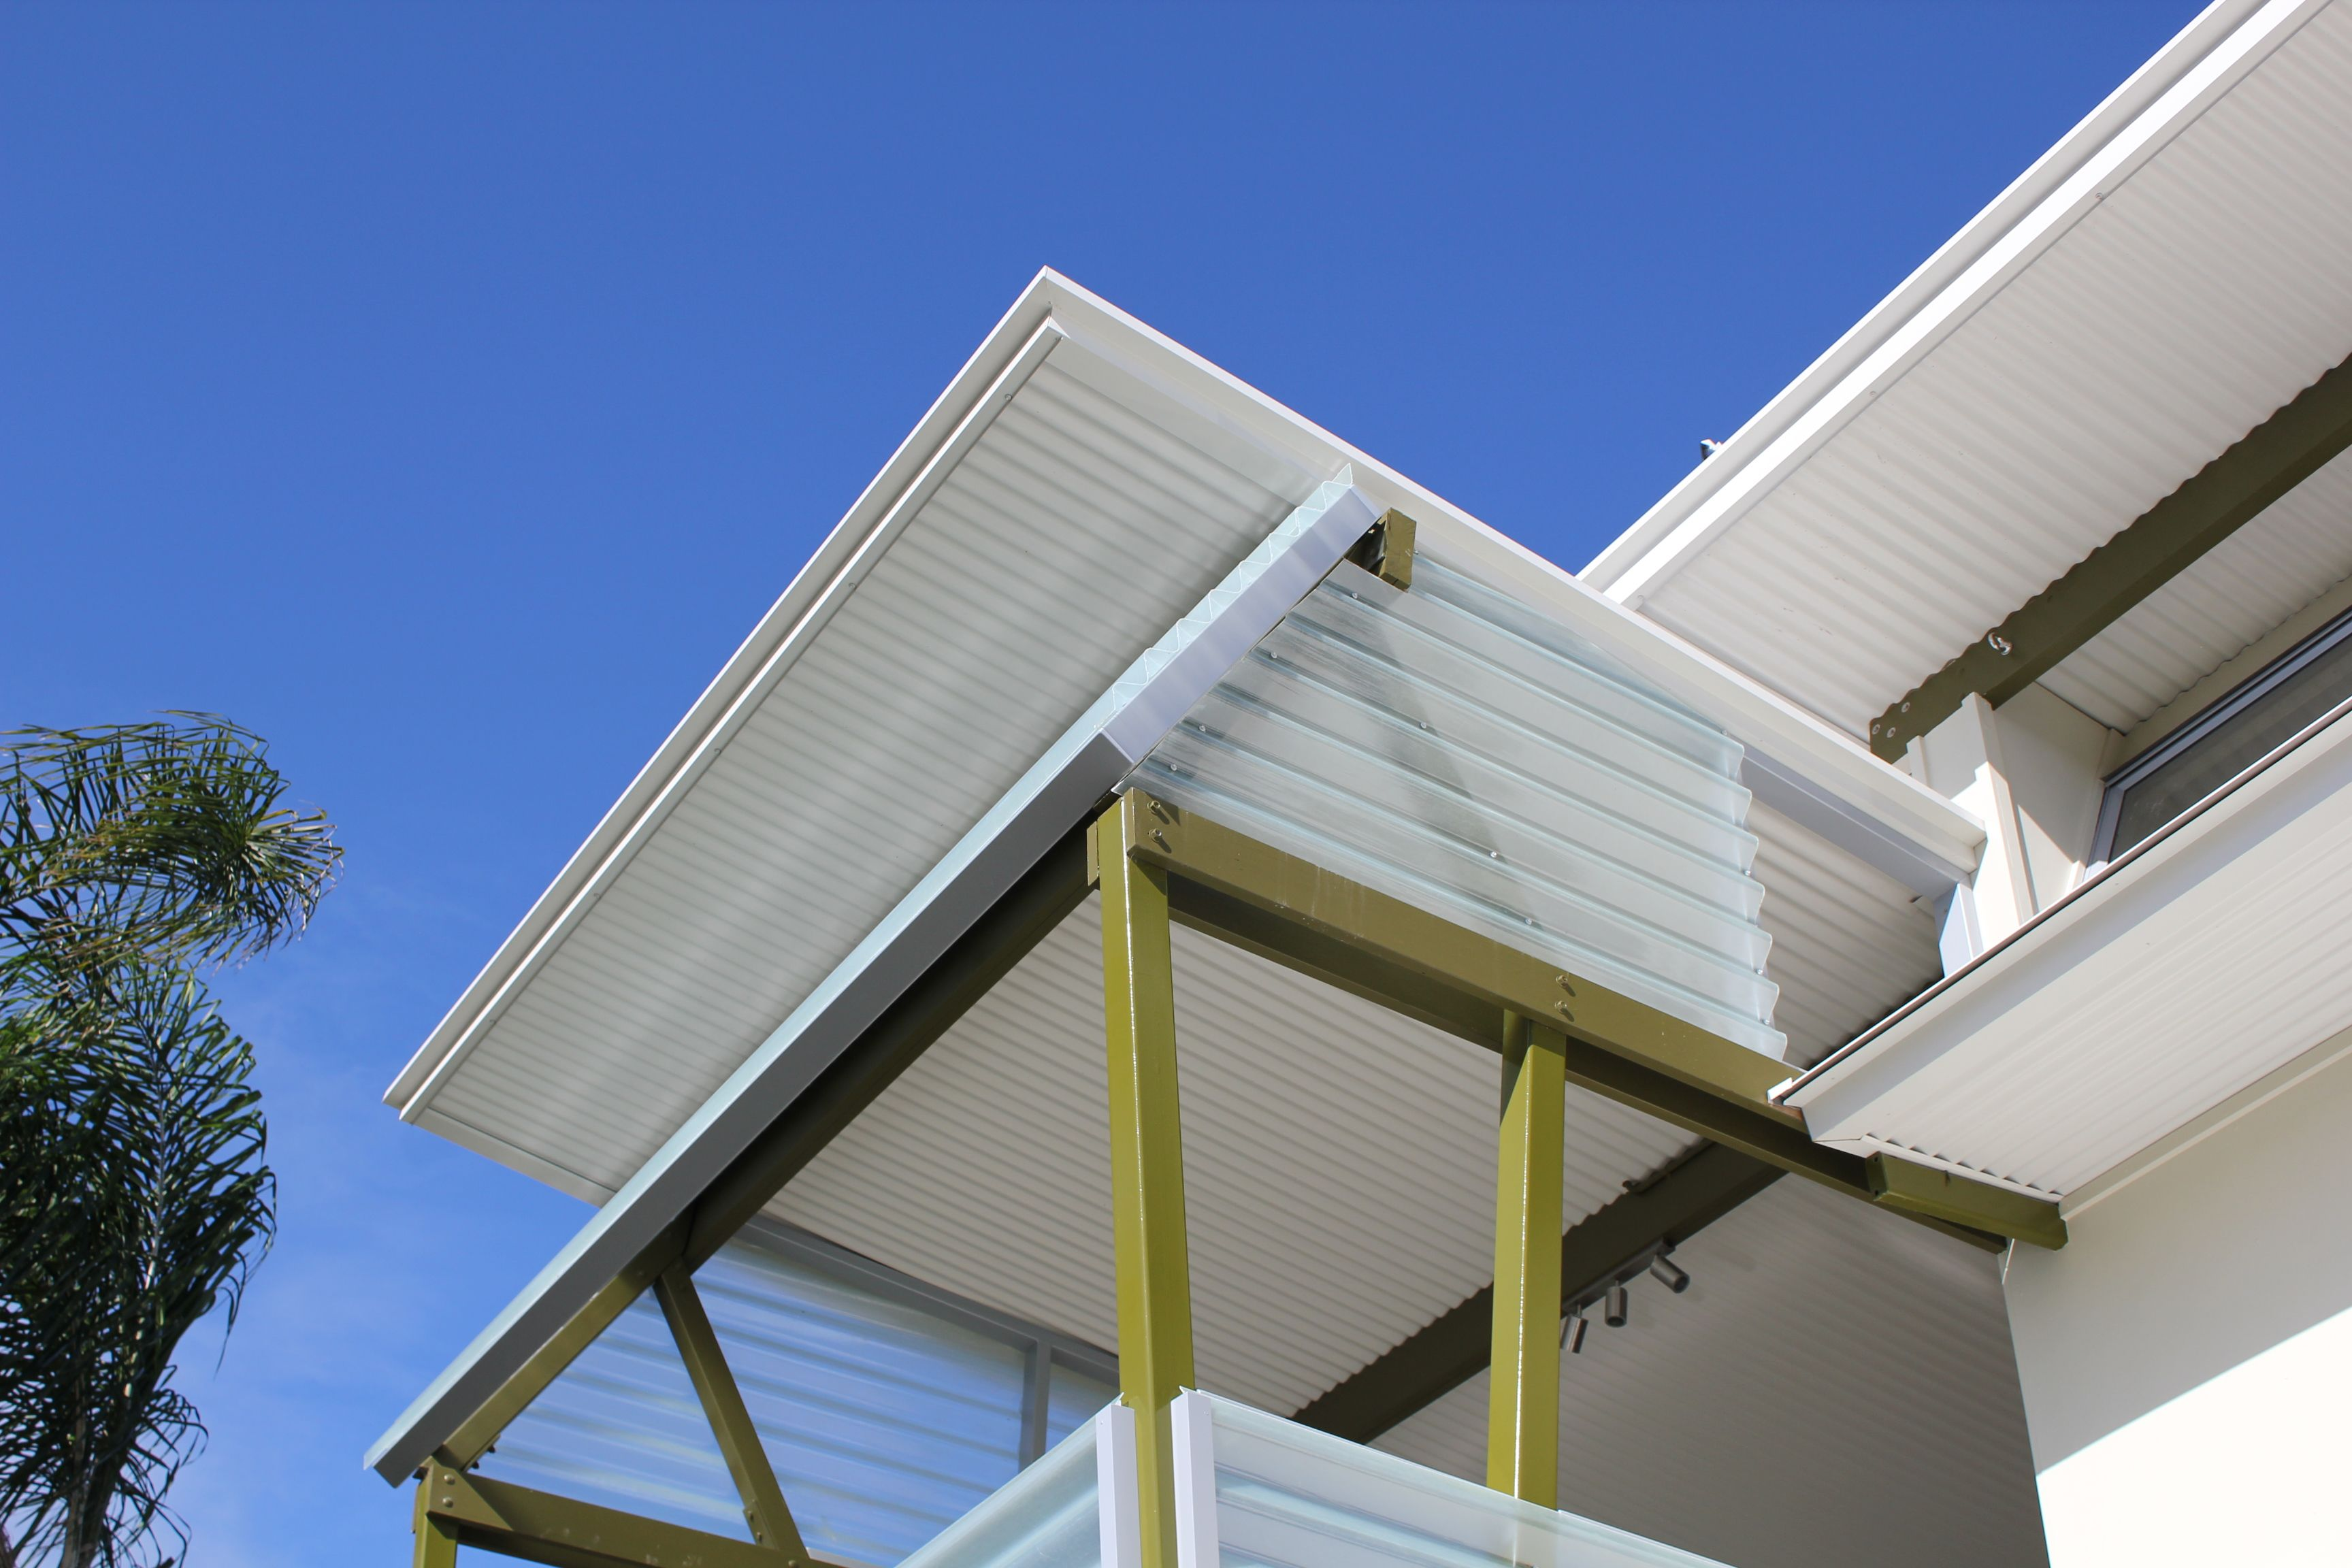 The Insulated Ritek Roof Panels Provide Year Round Comfort And Protection.